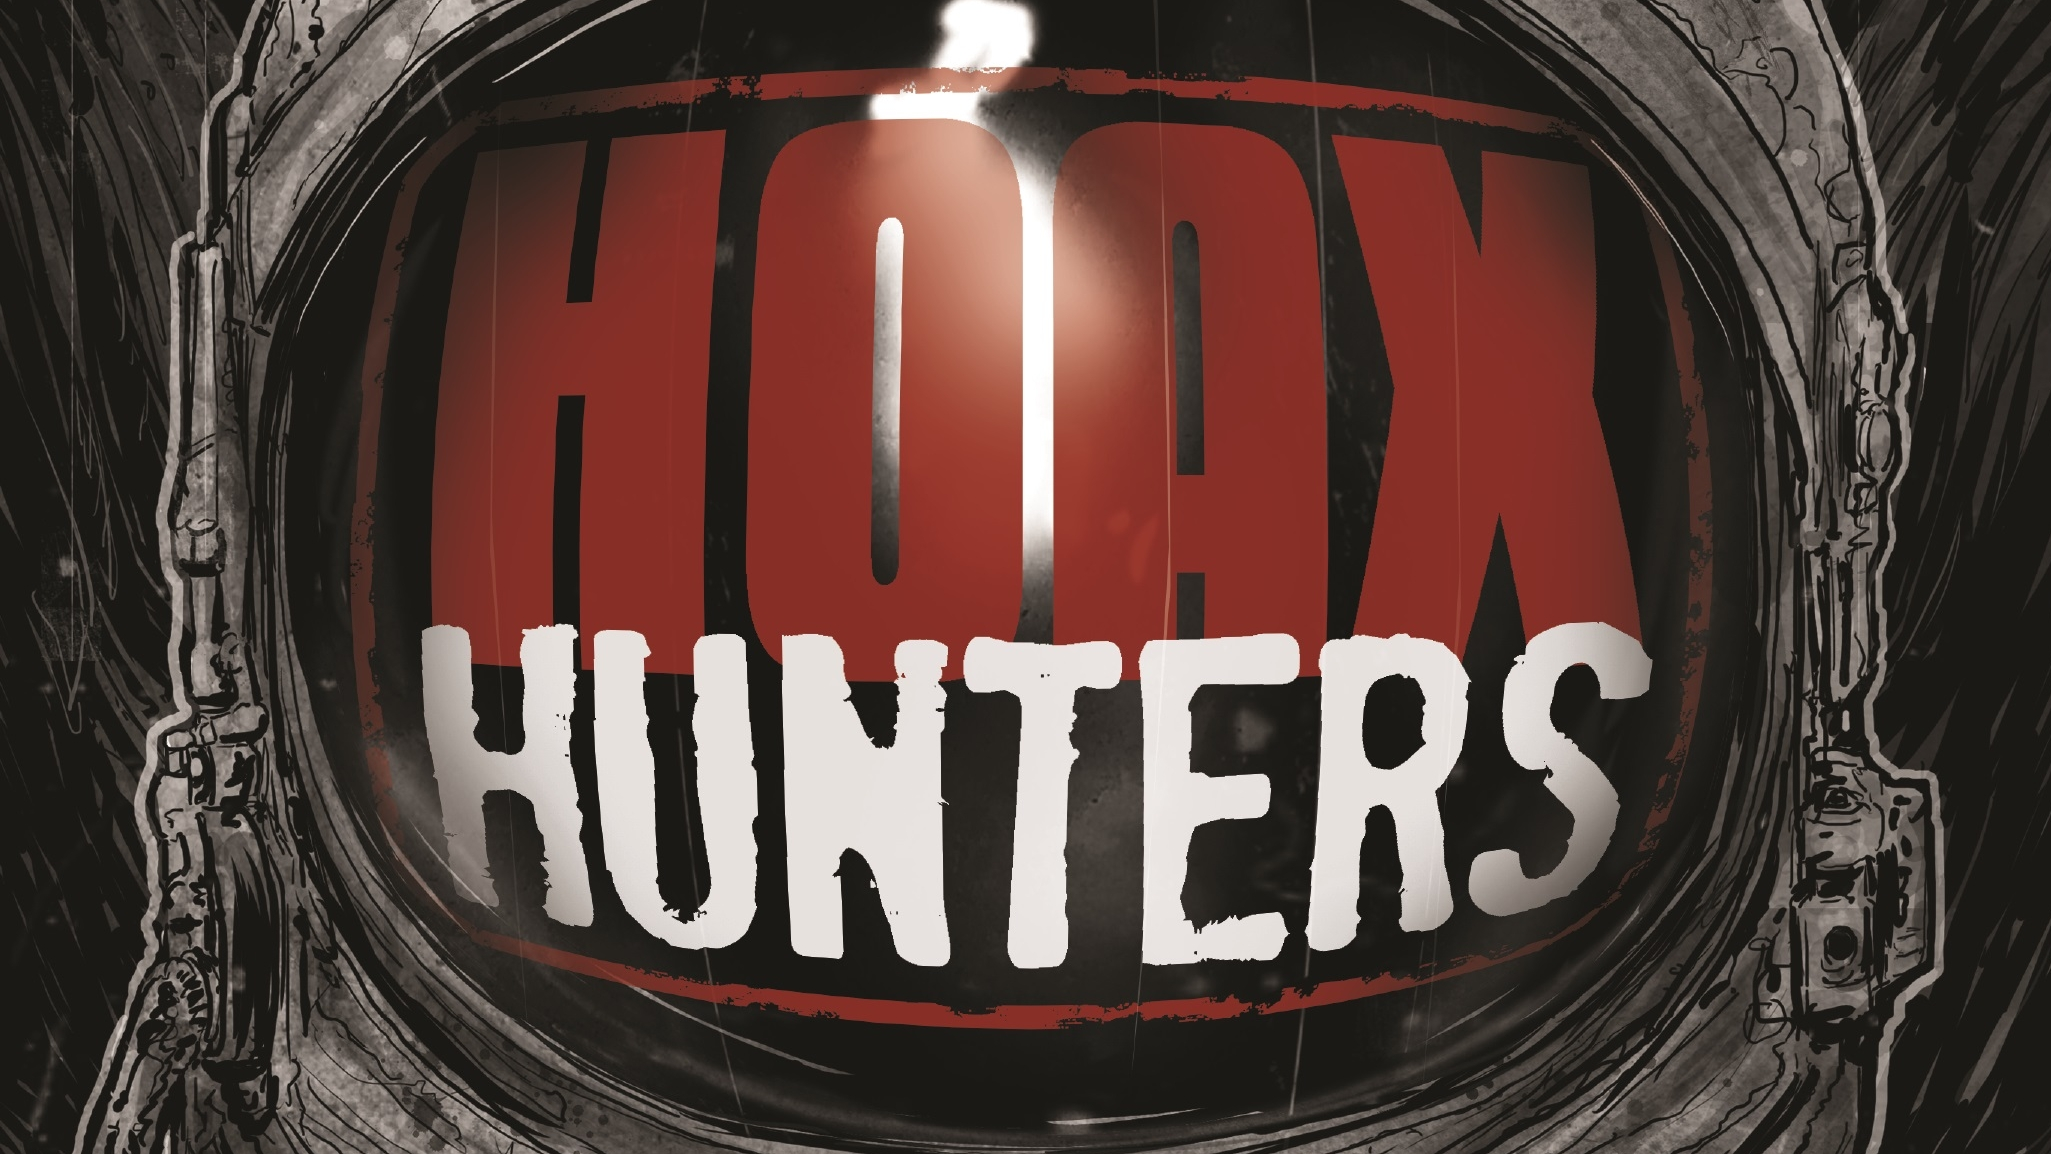 2051x1154 - Hoax Hunters Wallpapers 19